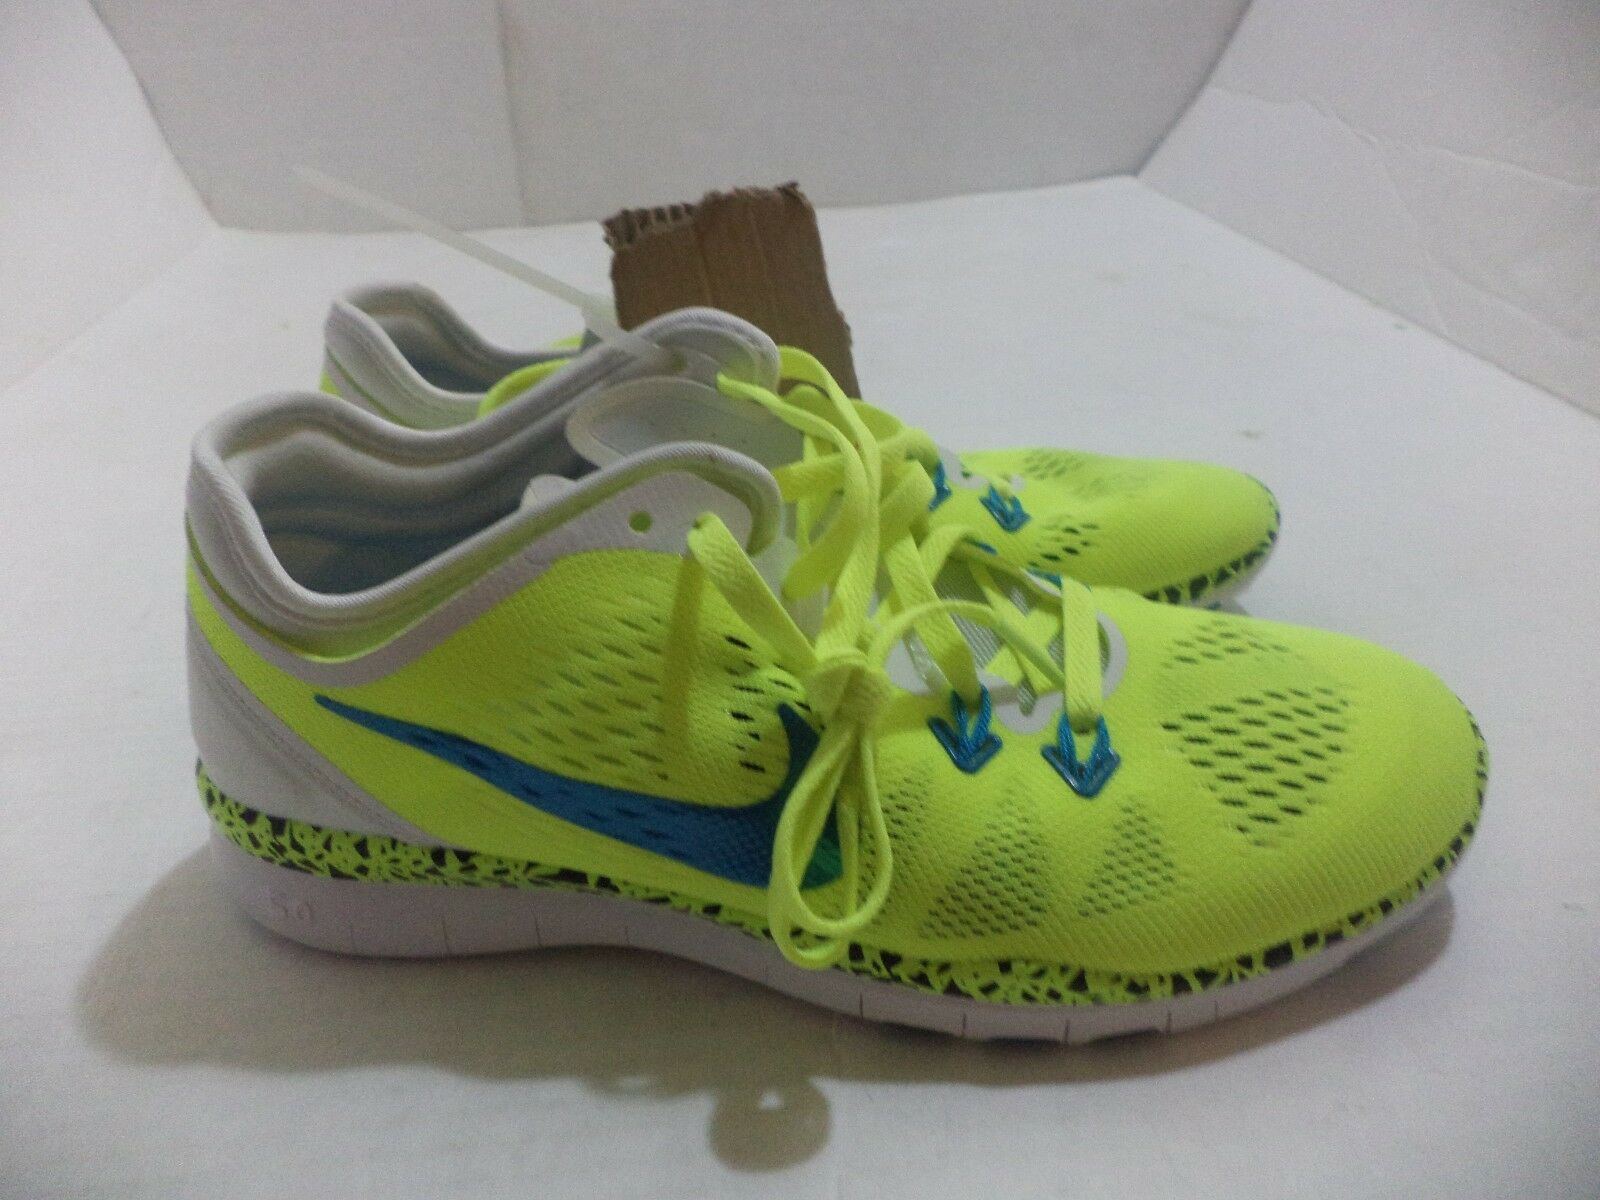 Nike Womens Free 5.0 TR Fit 5 Training Shoes Running Size 6-10 Color Volt & Blue